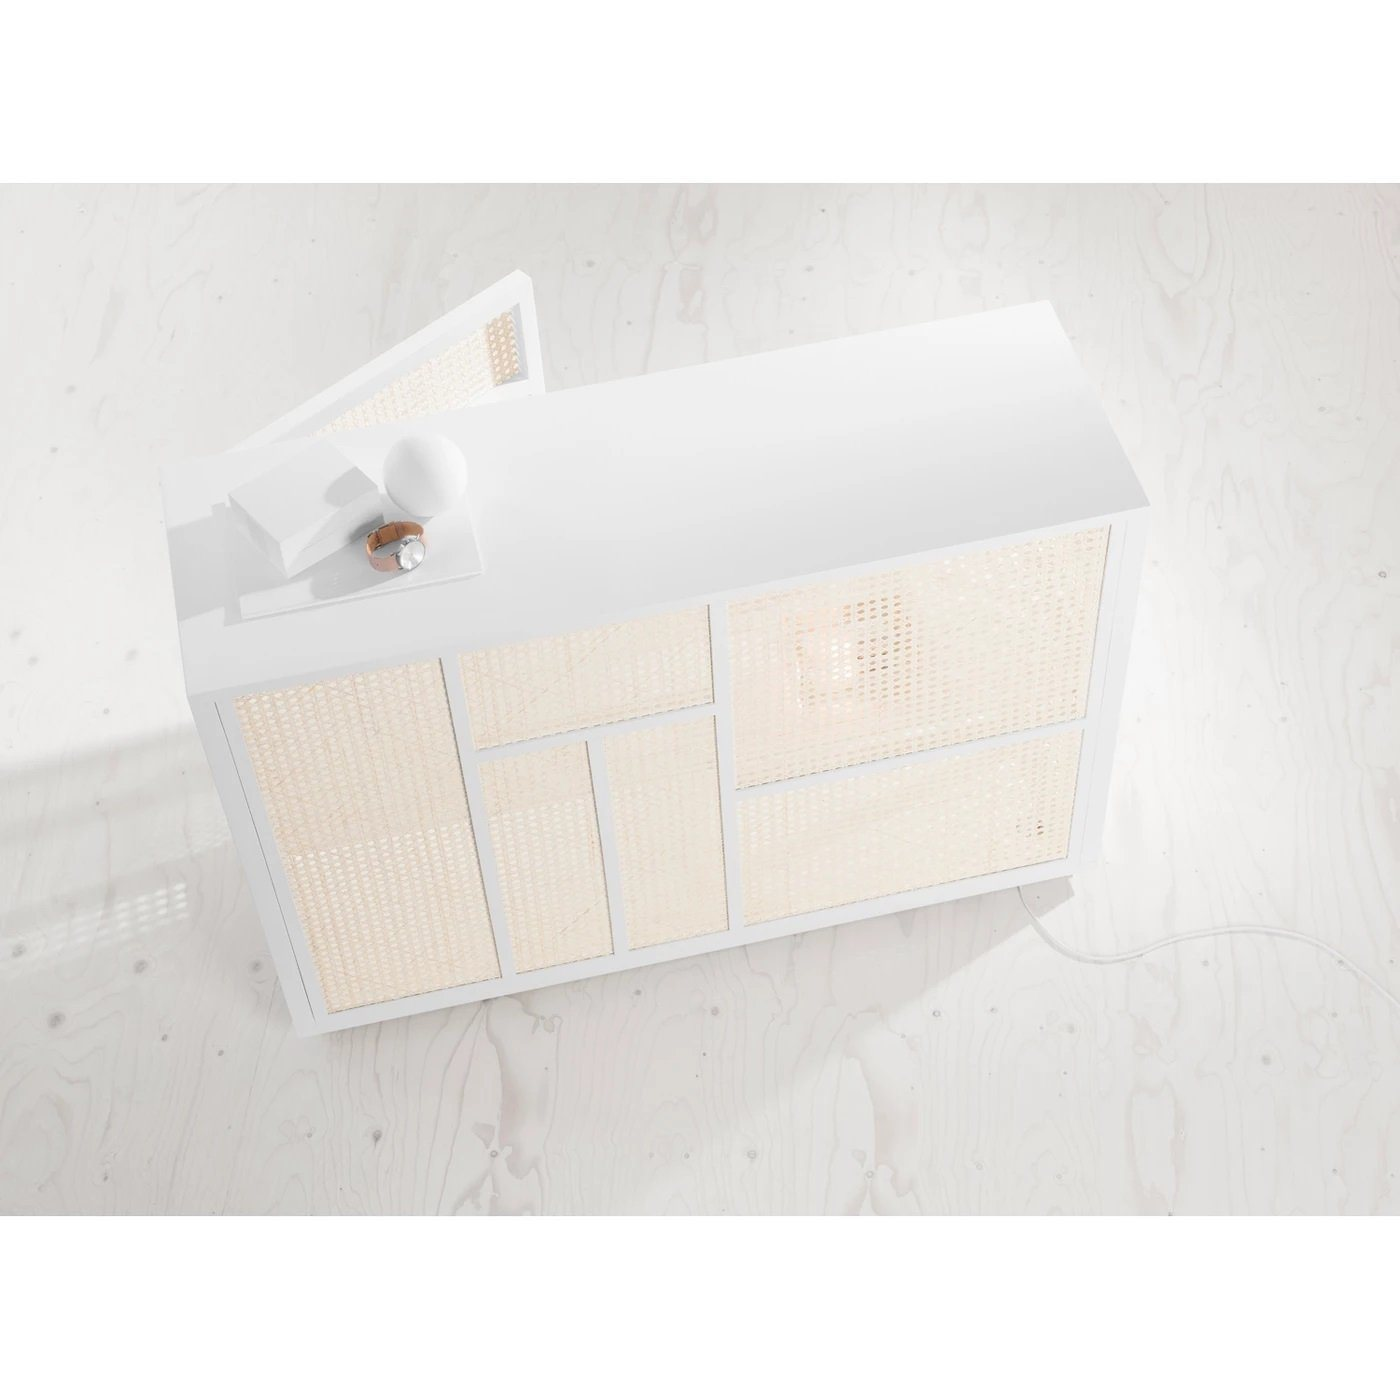 DESIGN HOUSE STOCKHOLM Air Sideboard White